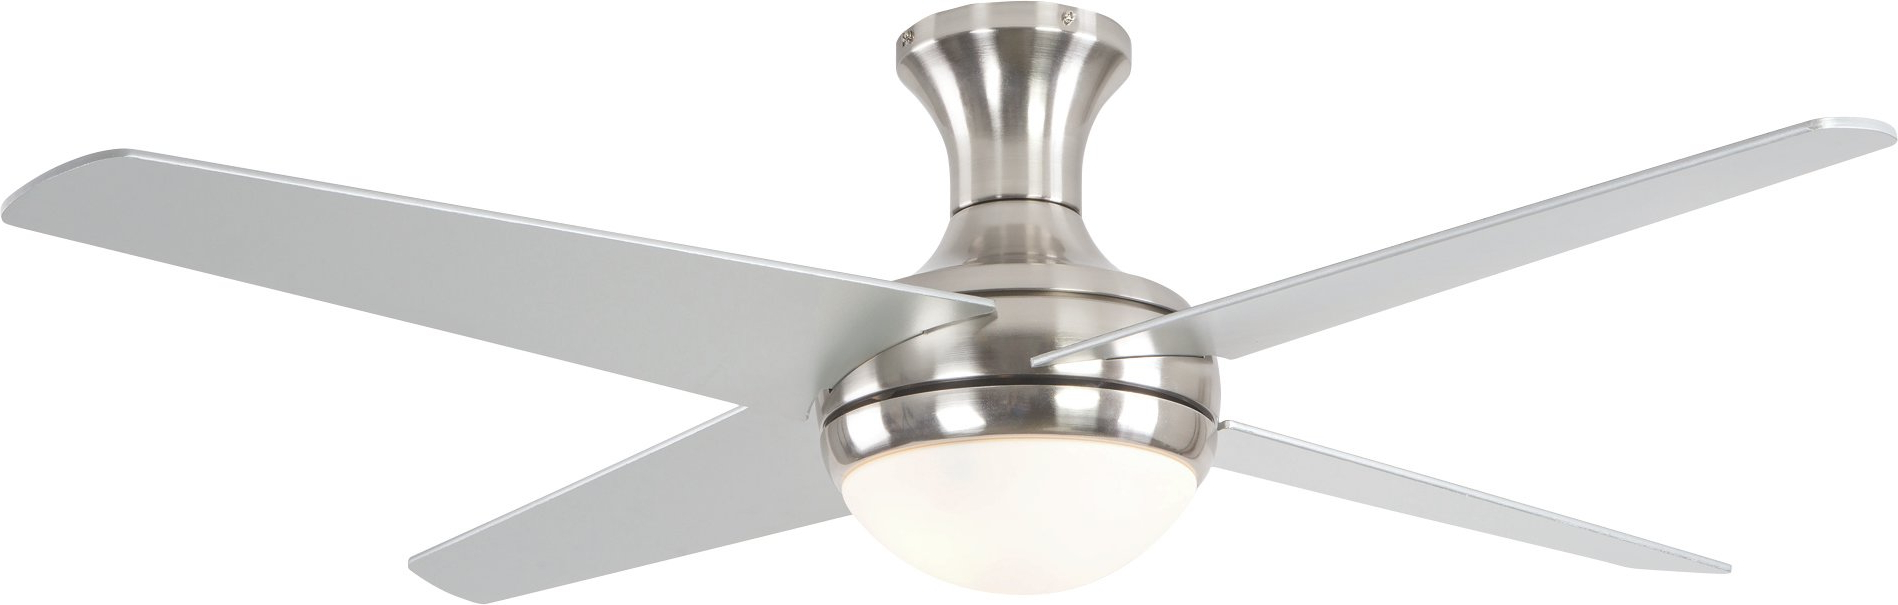 Four Blade Ceiling Fans Intended For Popular Cranbrook 4 Blade Ceiling Fans (View 10 of 20)